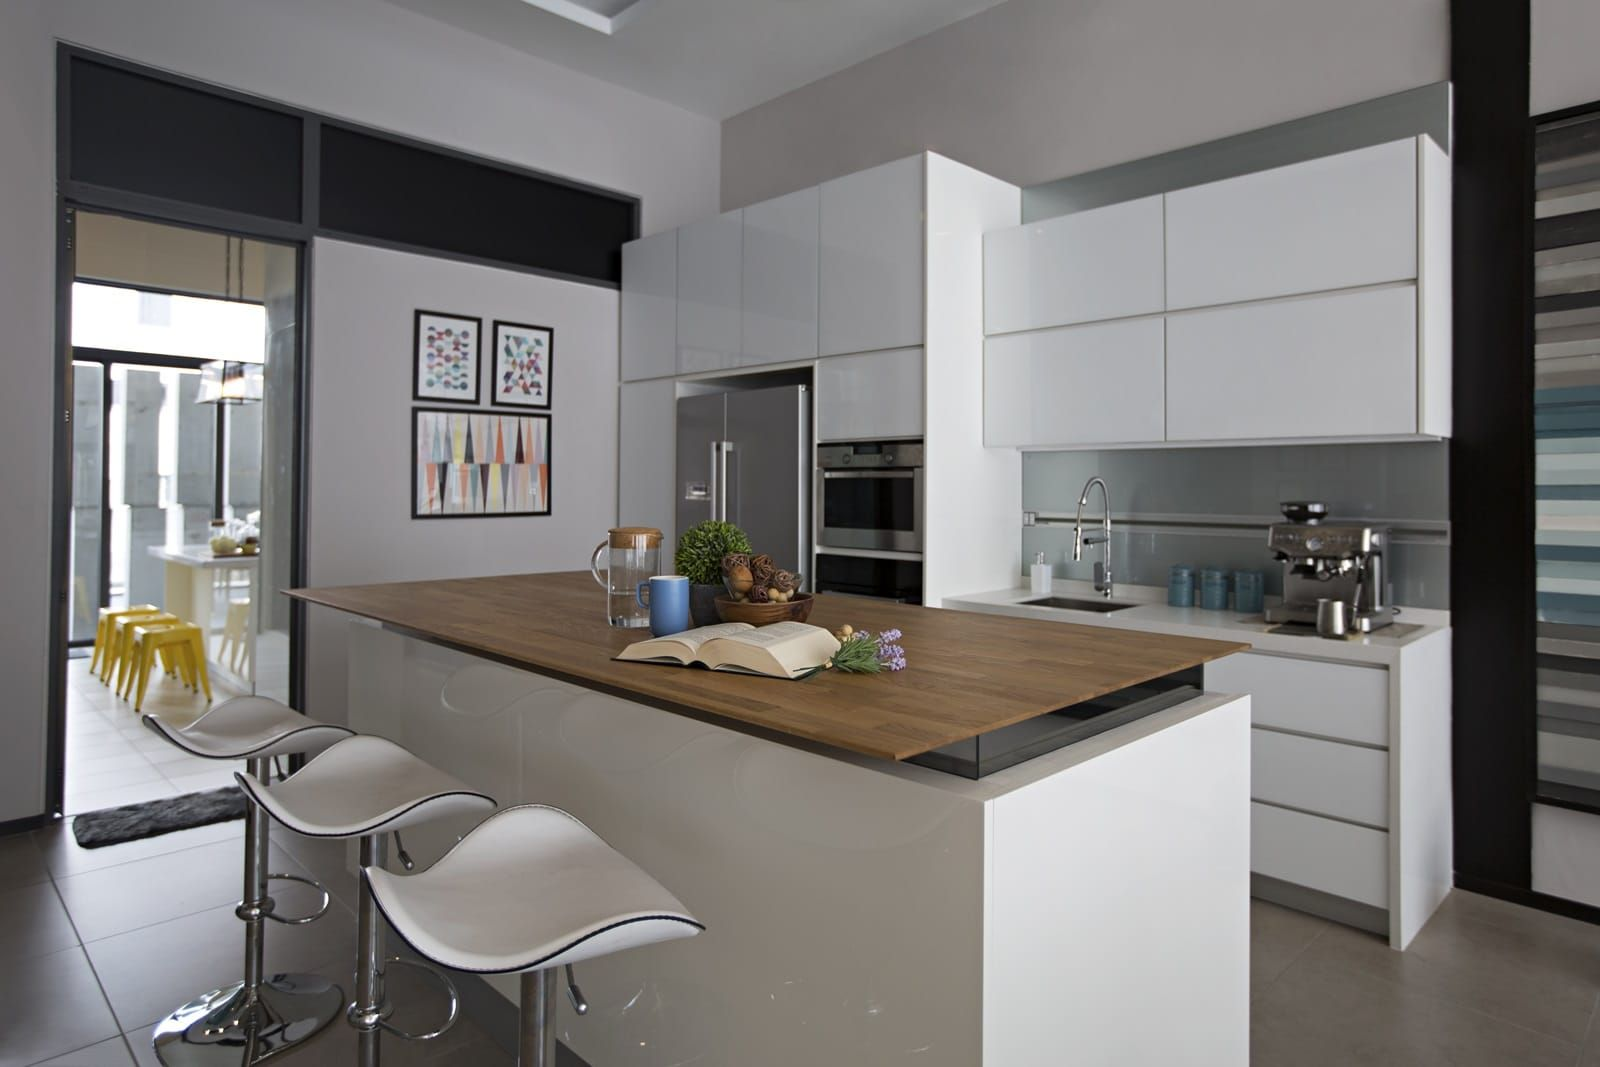 Modern terrace house dry kitchen and island by turn design for Terrace kitchen ideas